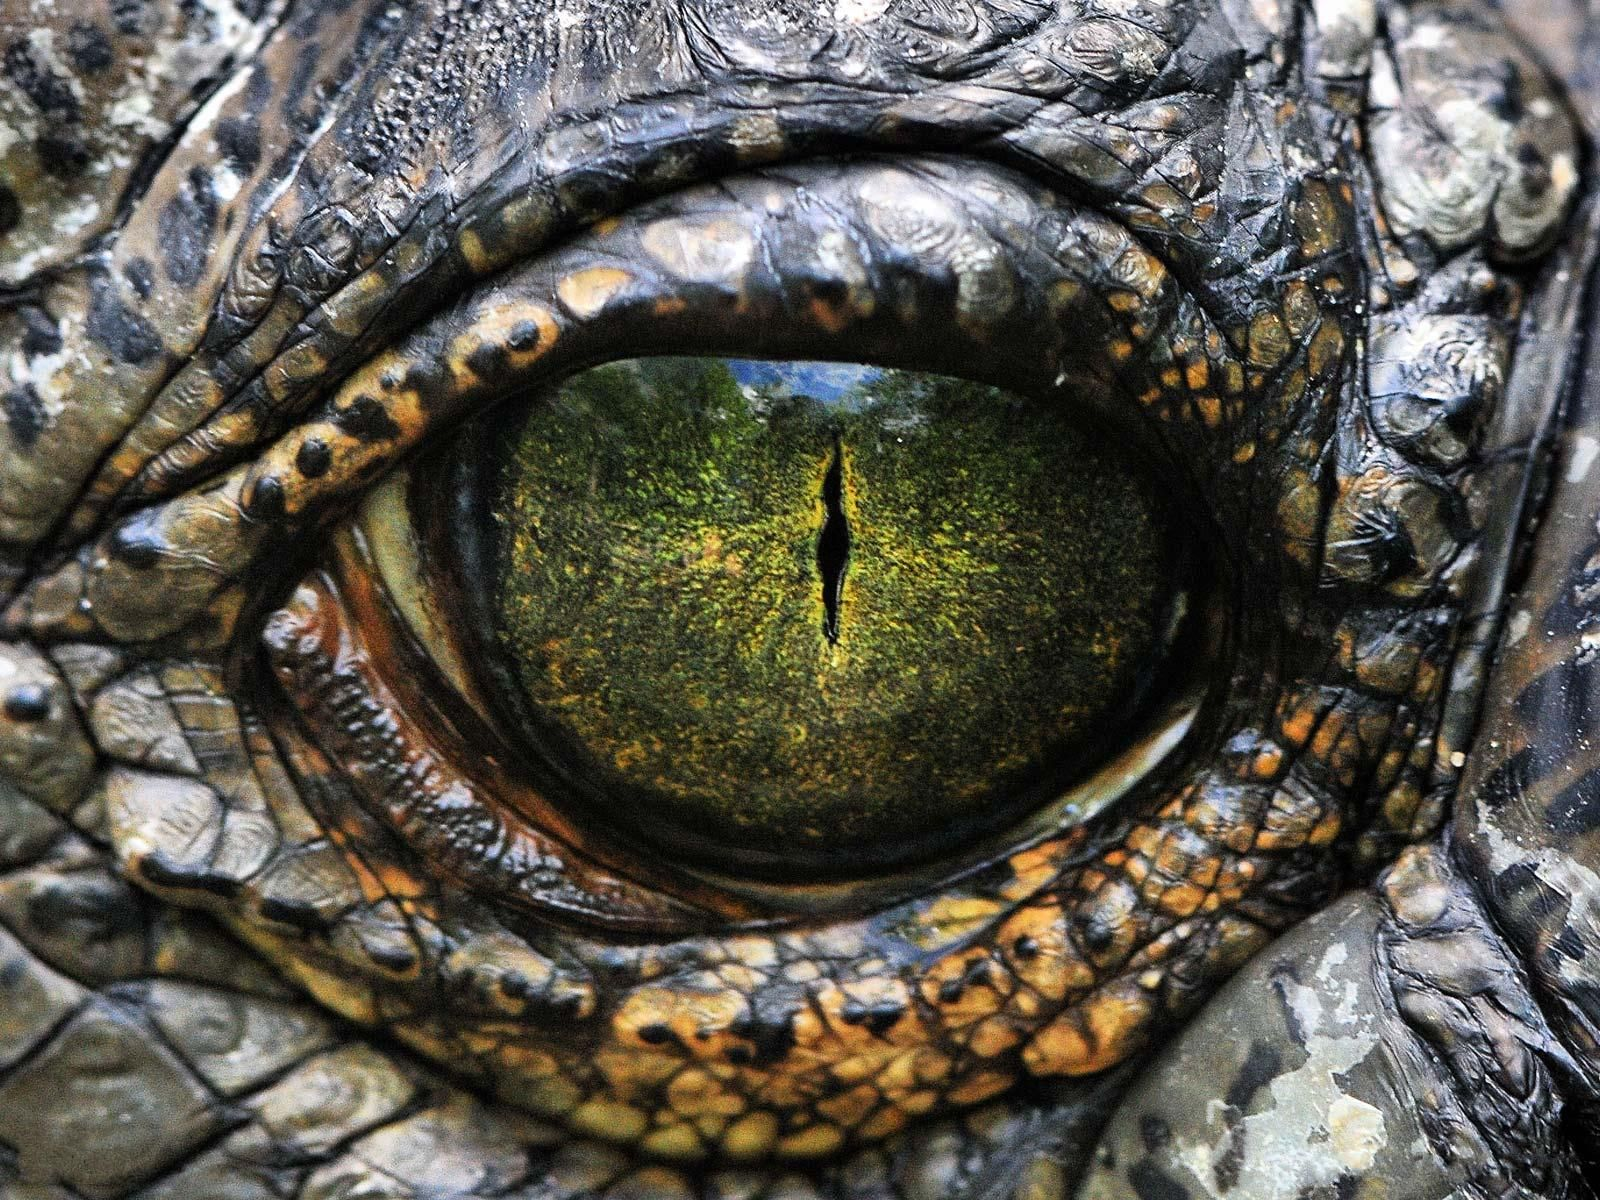 reptile eyes - Поиск в Google | Animals | Pinterest | Eye, Reptiles ...